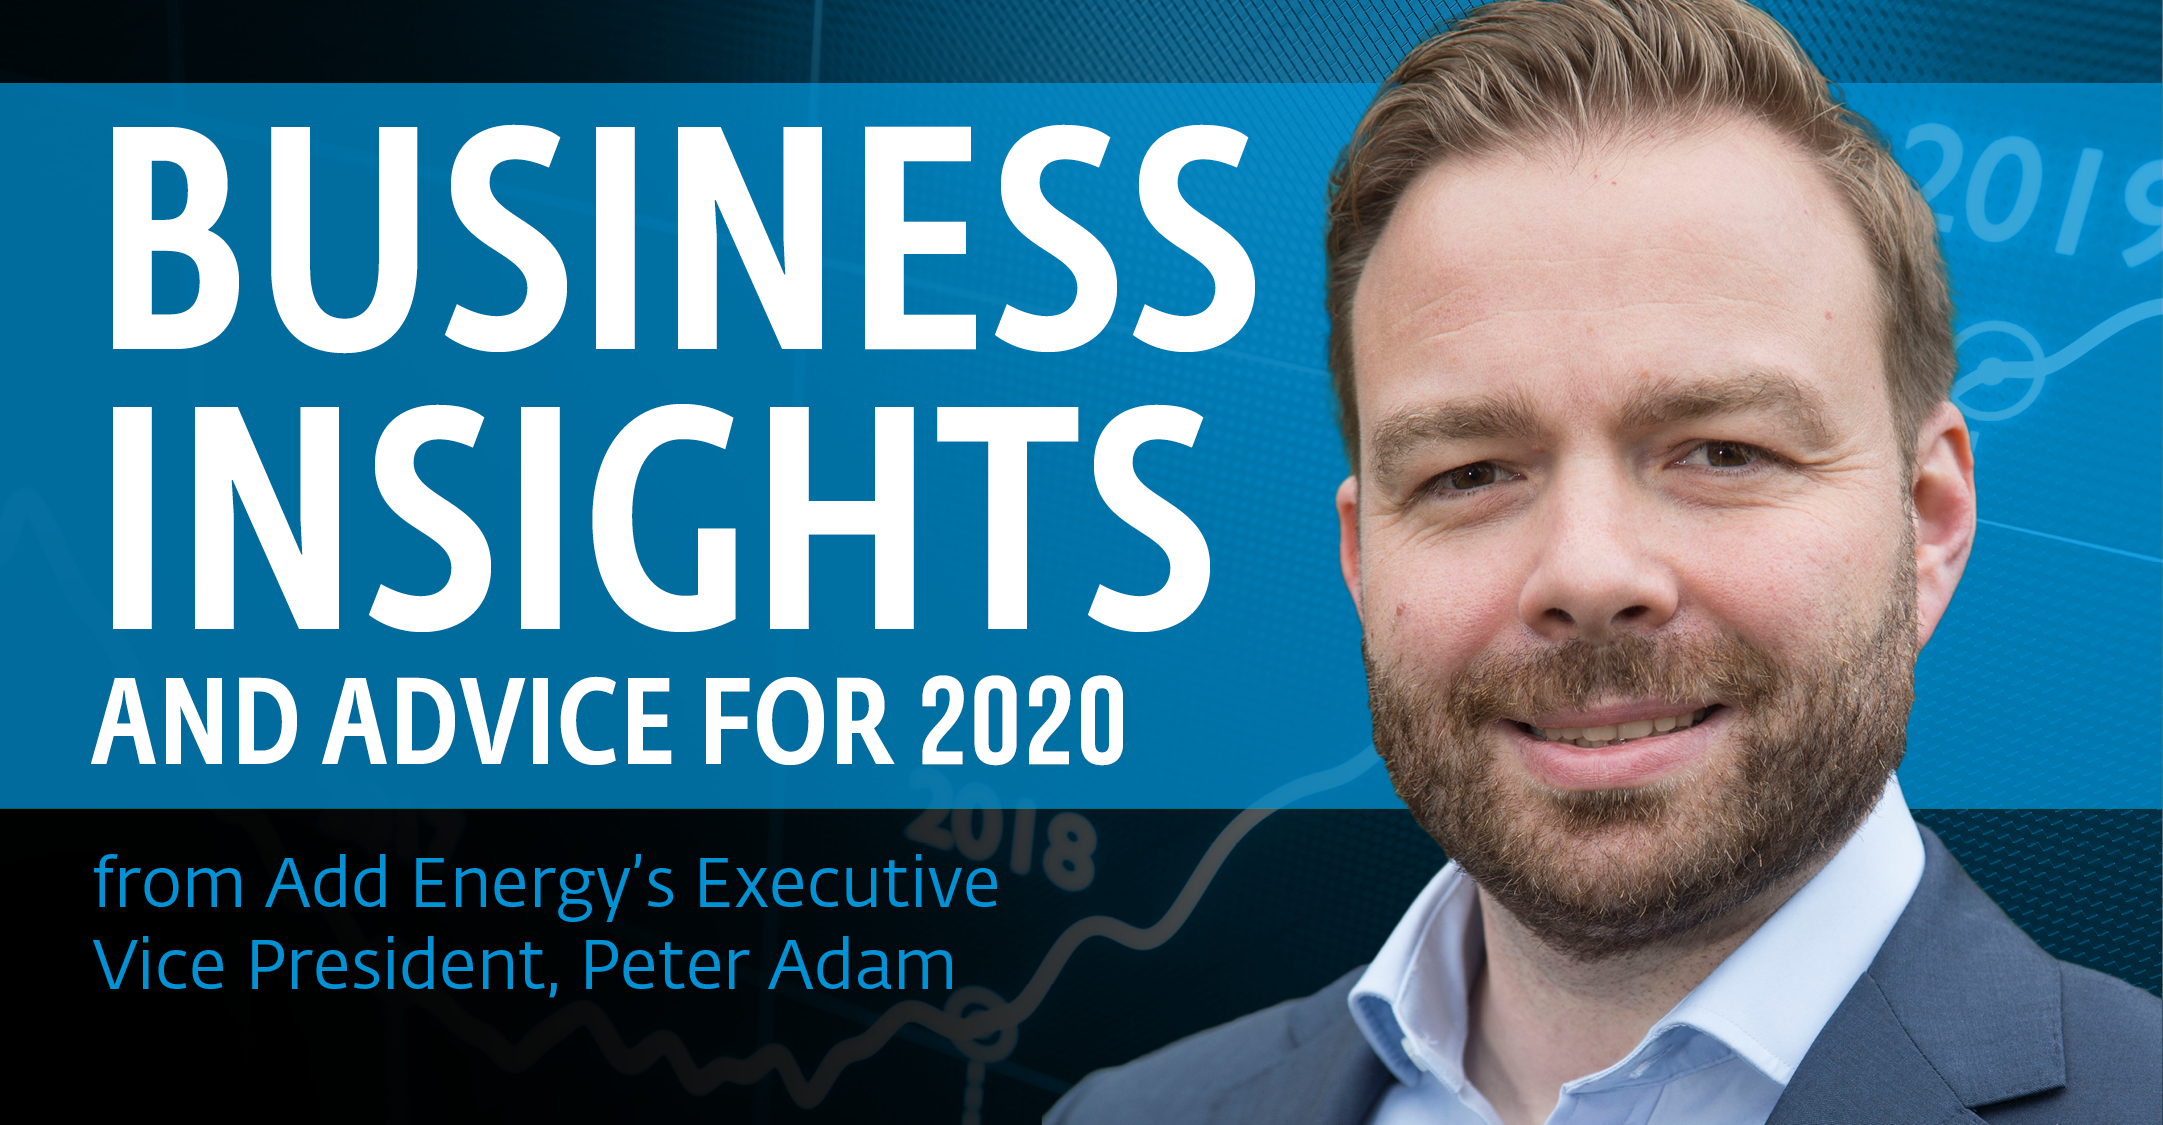 Business insights and advice for 2020, from Add Energy's EVP Peter Adam